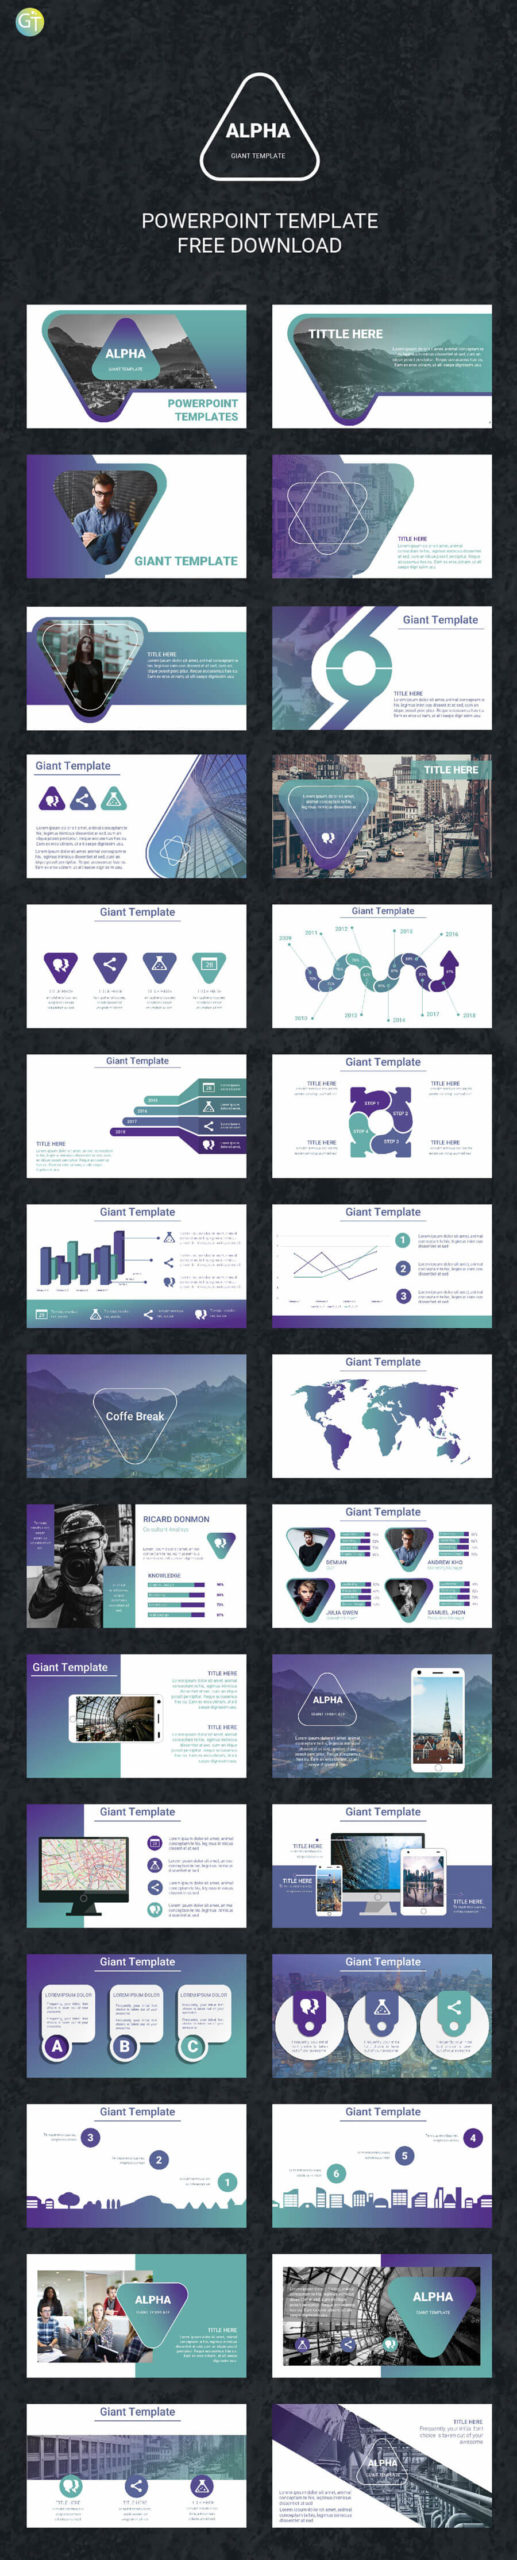 ALPHA - FREE POWERPOINT TEMPLATE